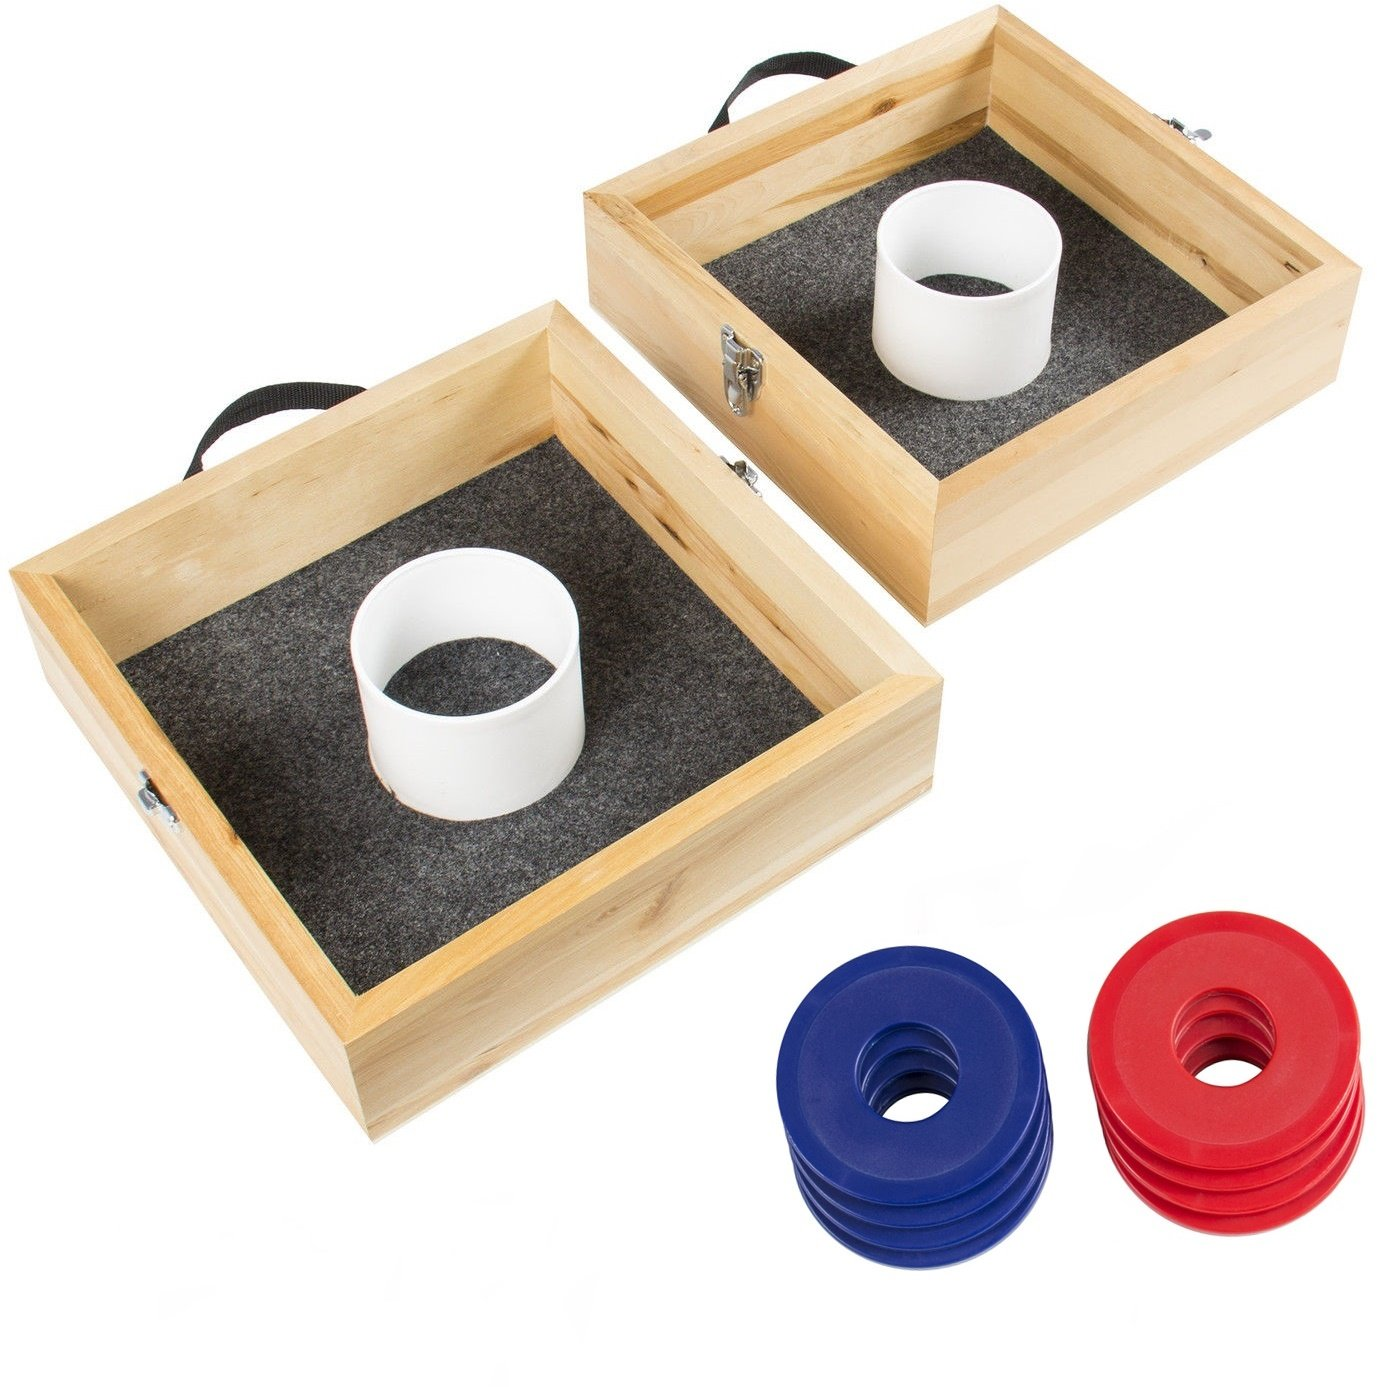 Classic Birch Wood Washer Toss Game Set Outdoor Party Carrying Case by FDInspiration